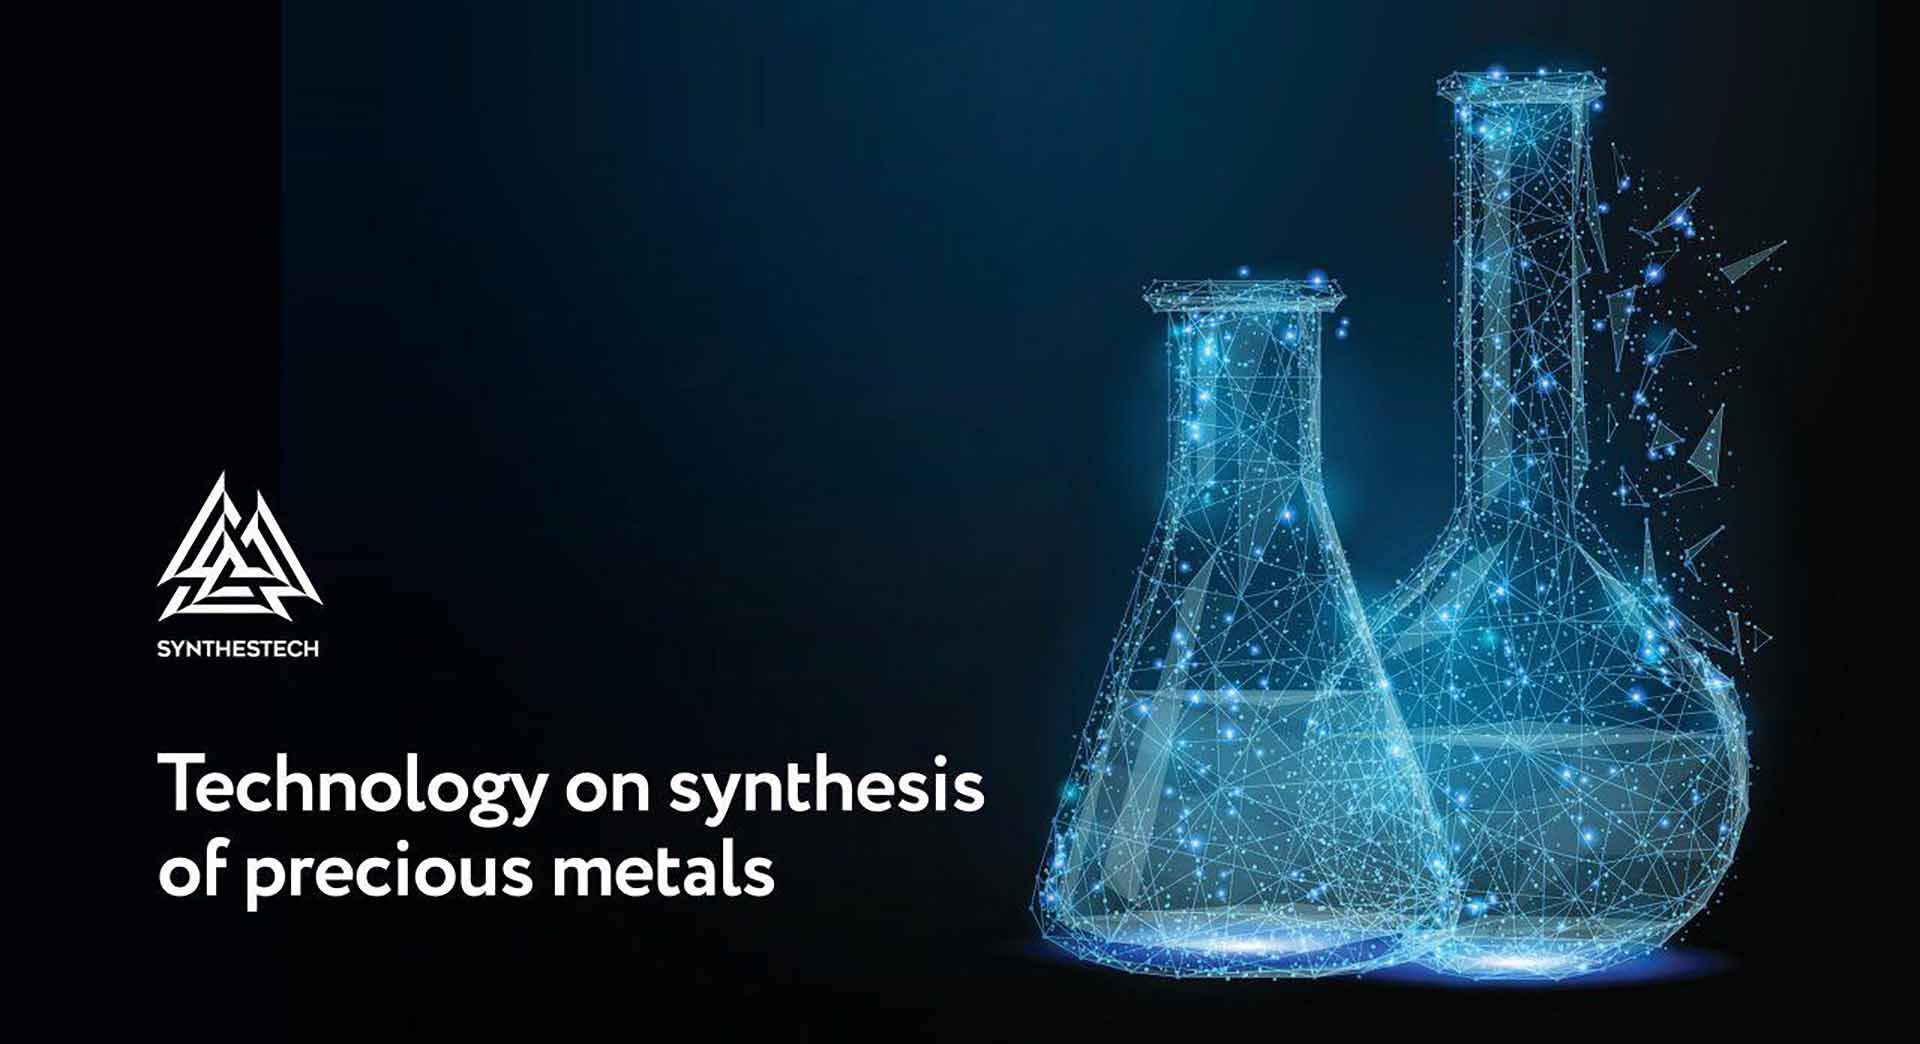 Synthestech Project on Synthesis of Valuable Metals Has Successfully Completed Pre-Sale and Launches ICO